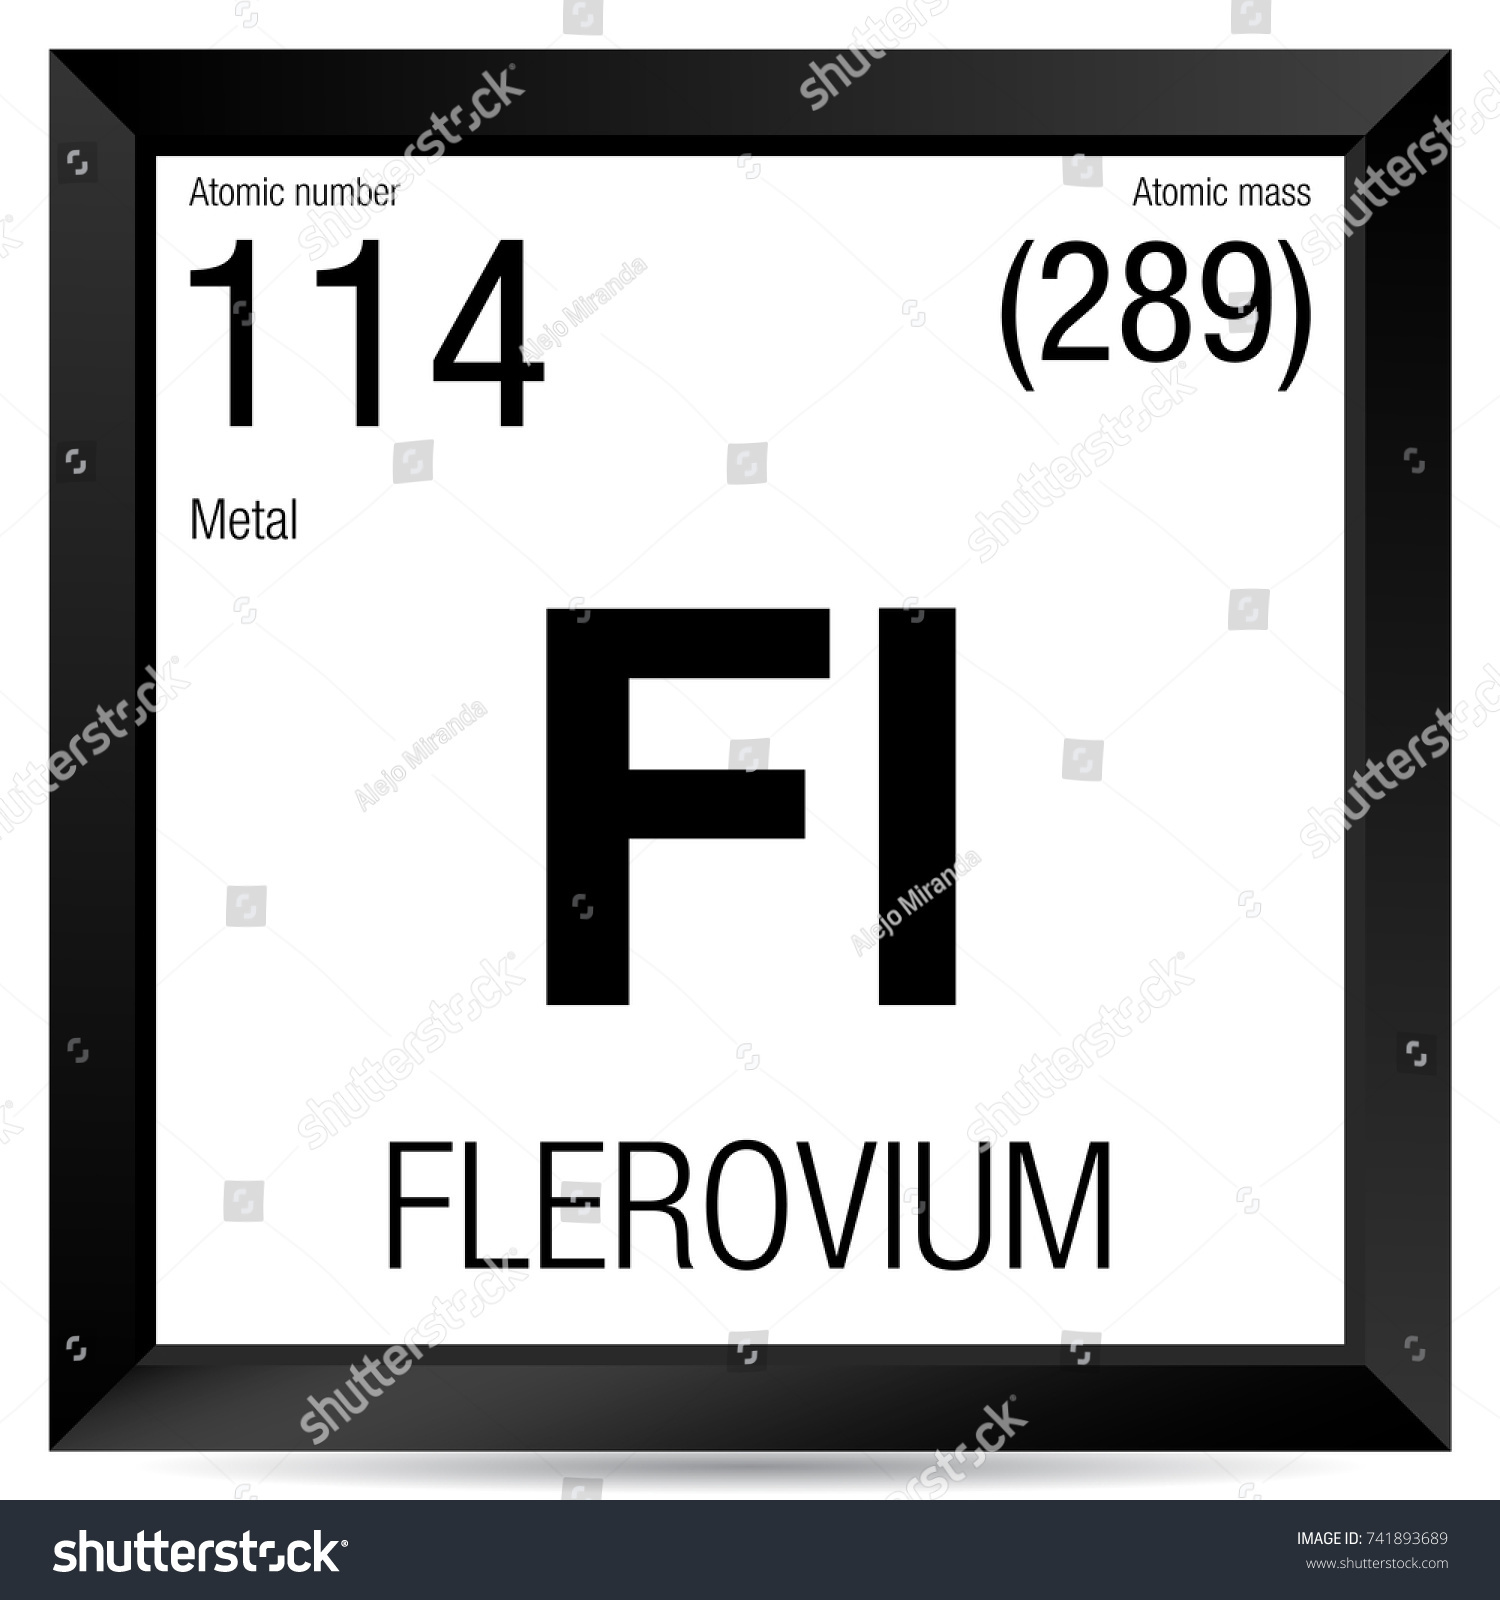 Element k periodic table choice image periodic table images element k periodic table choice image periodic table images element k periodic table image collections periodic gamestrikefo Choice Image